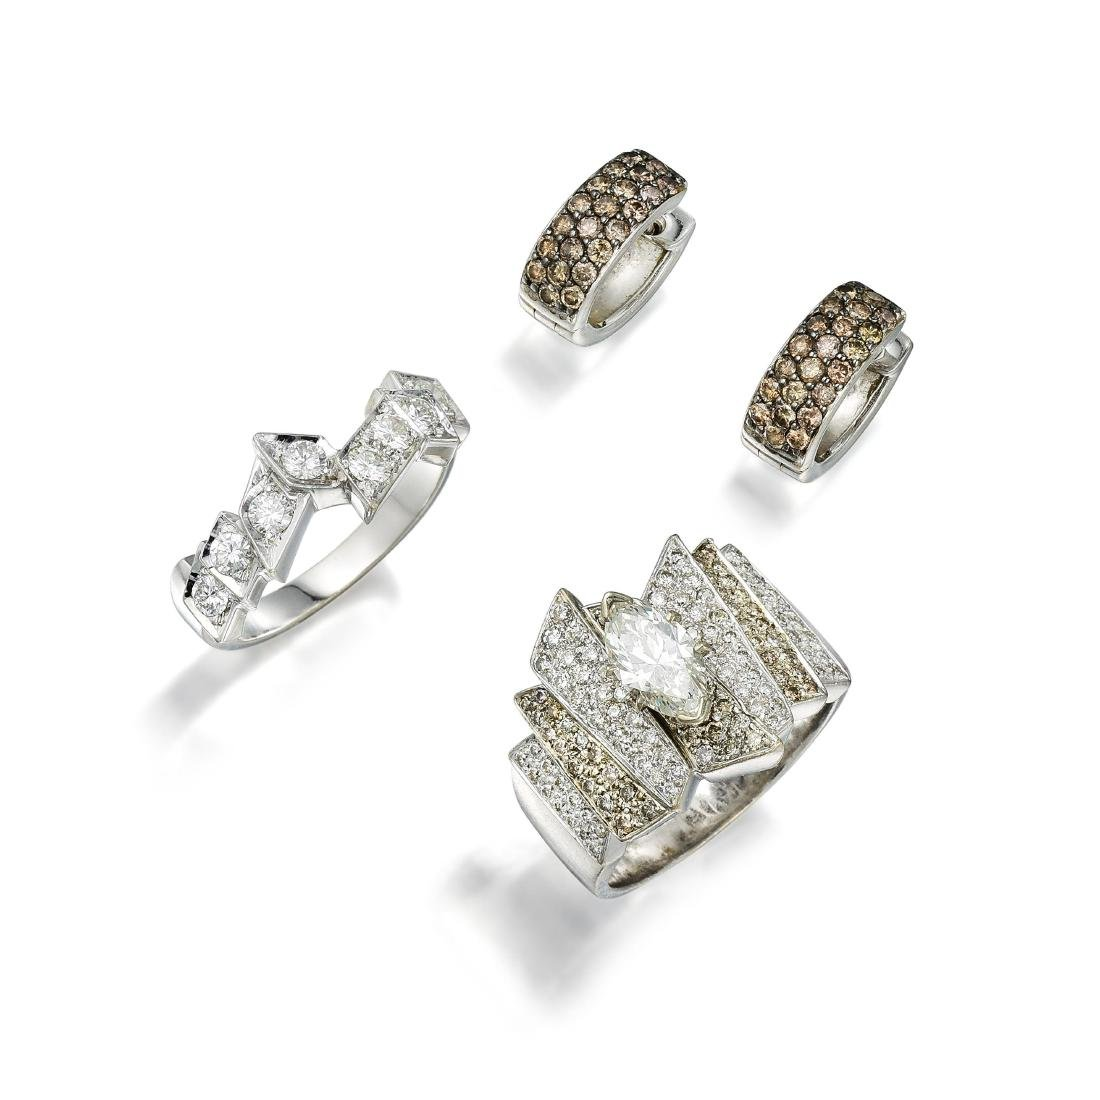 A Diamond Ring Set and Earrings